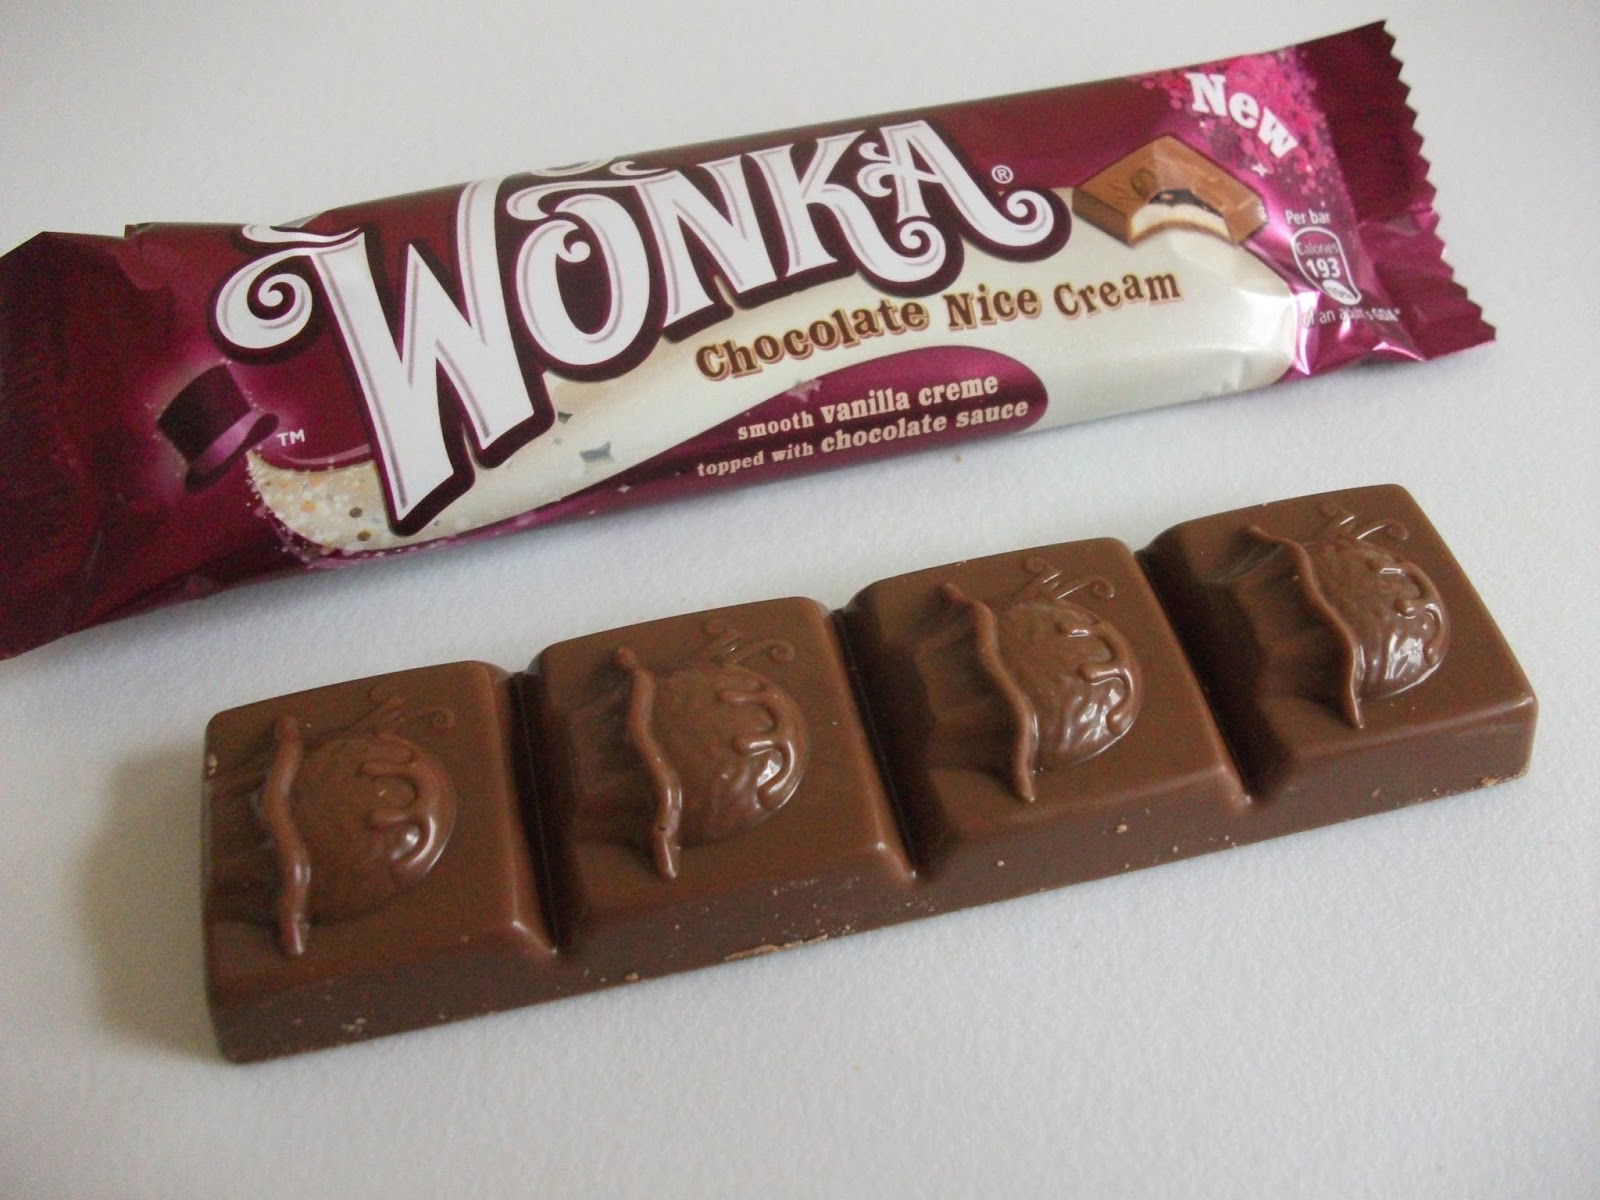 Snack Lover: Nestlé Wonka Chocolate Nice Cream Bar Review